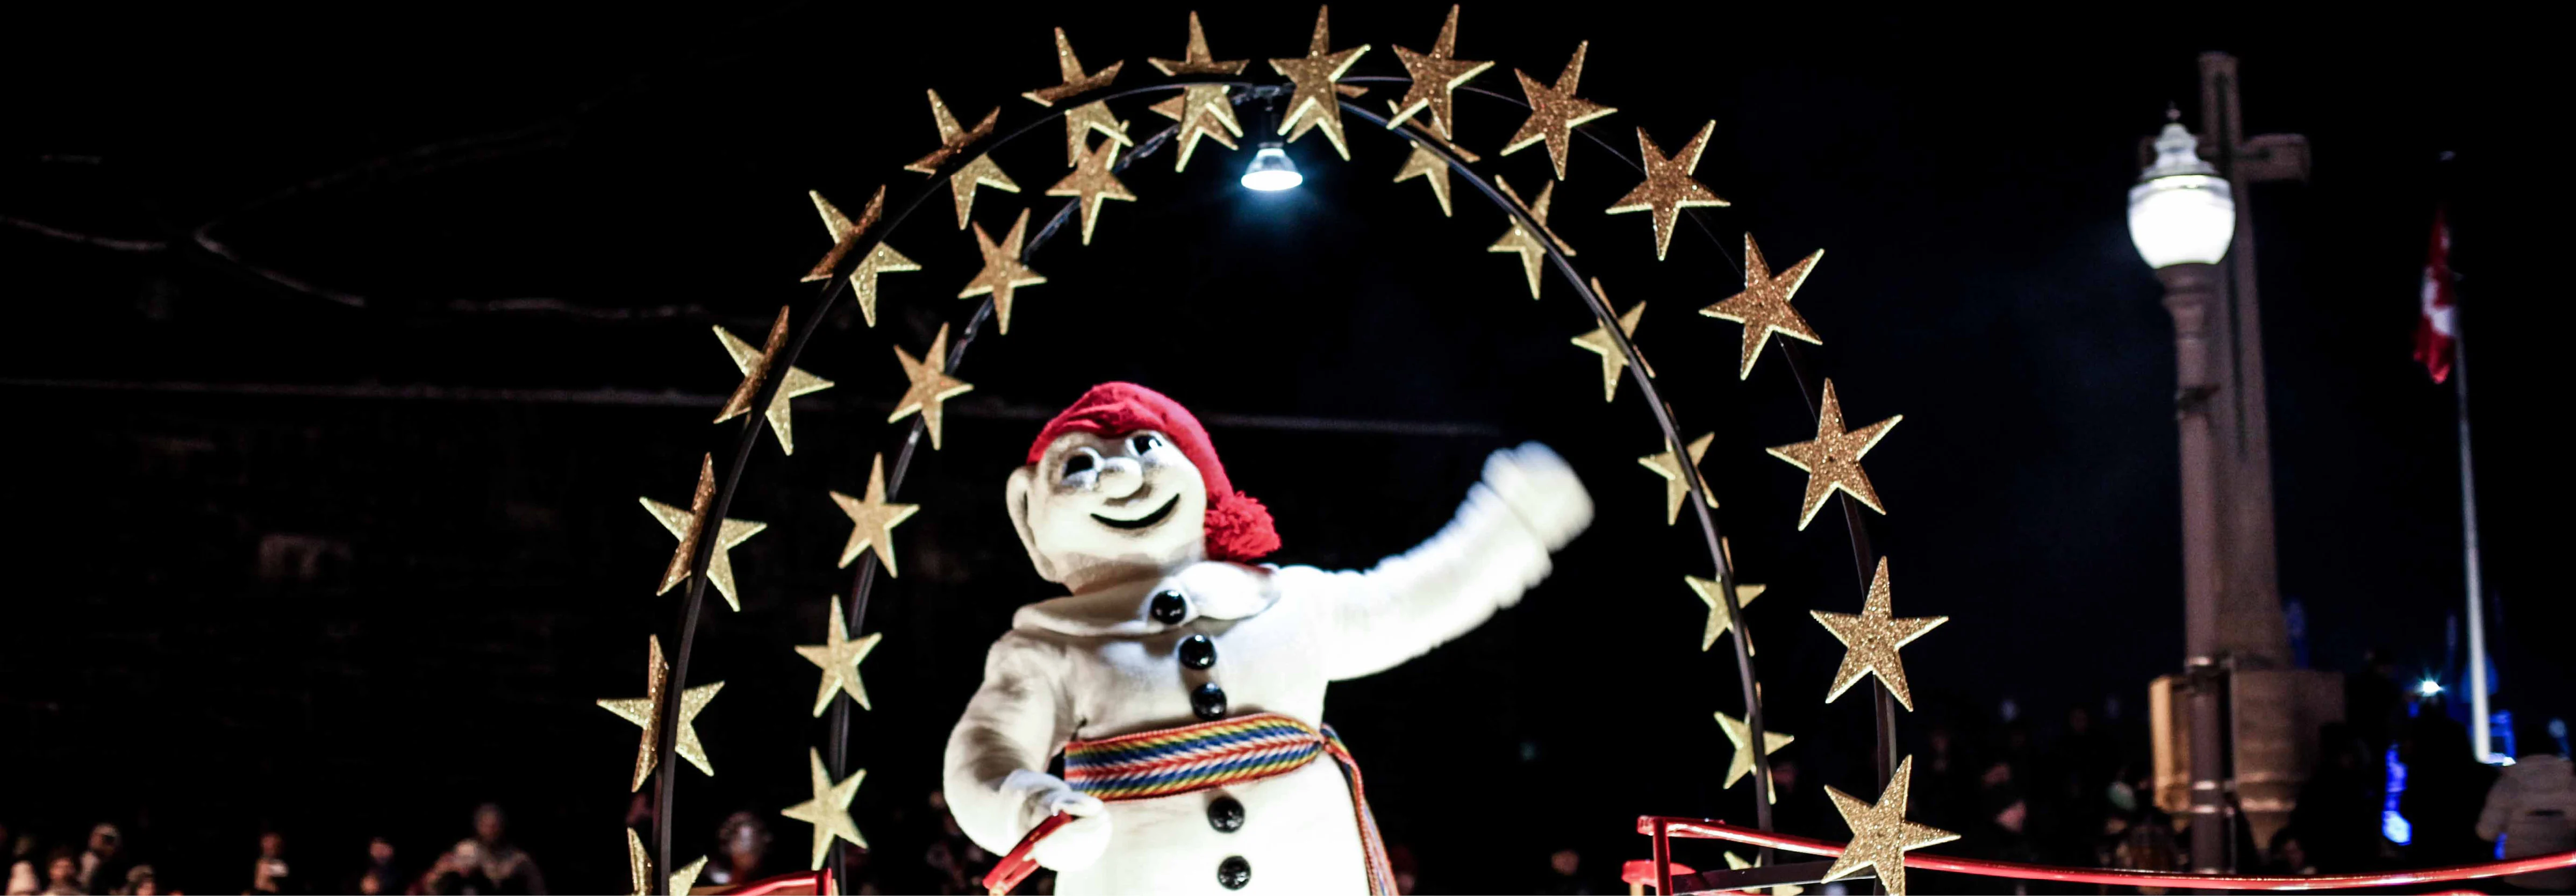 Bonhomme during the parade.